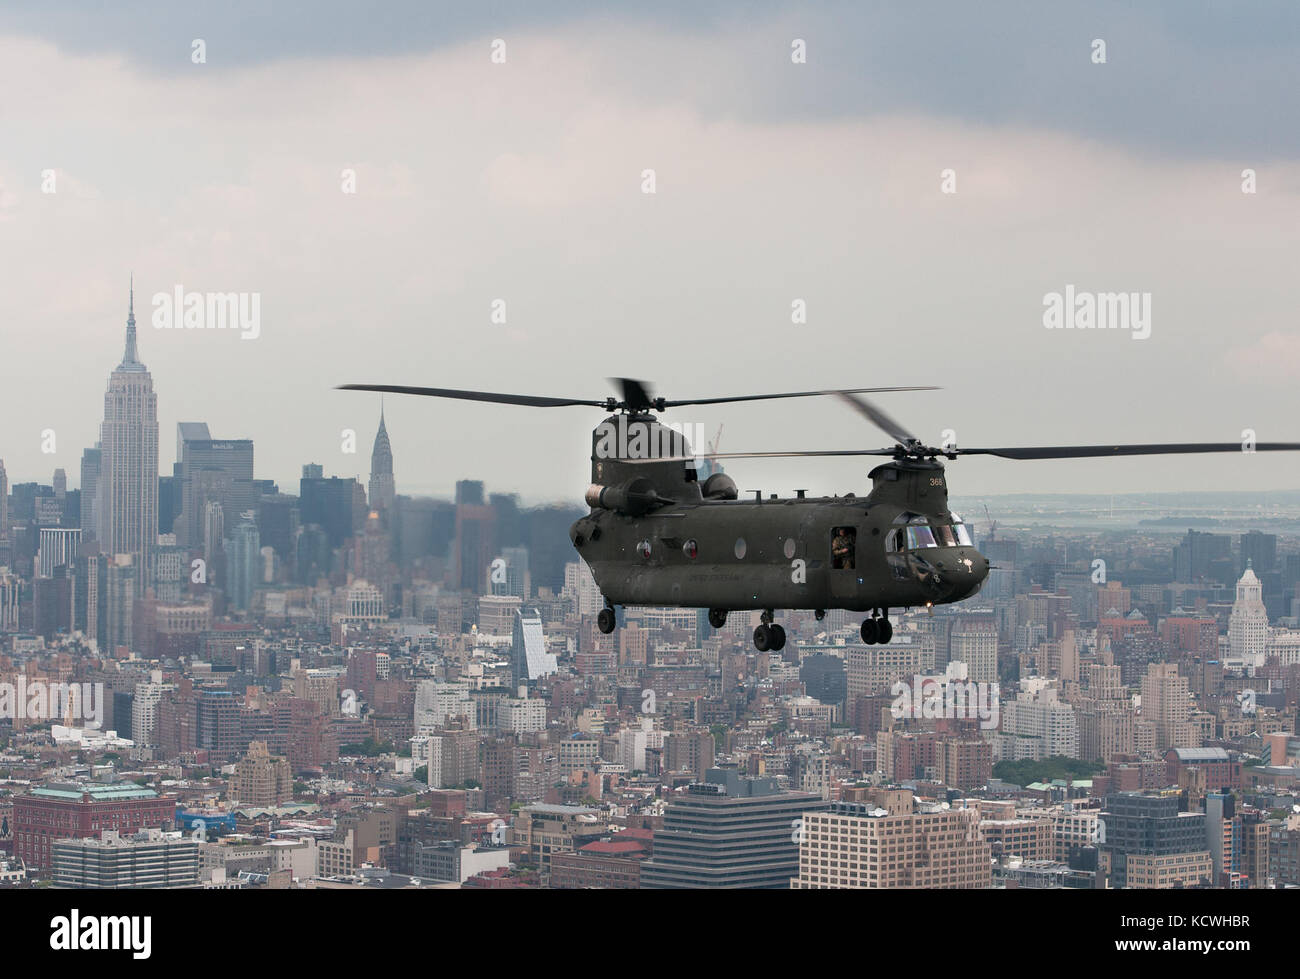 A South Carolina Army National Guard (SCARNG) CH-47D Chinook helicopter flies on the Hudson Rive, in proximity of Stock Photo